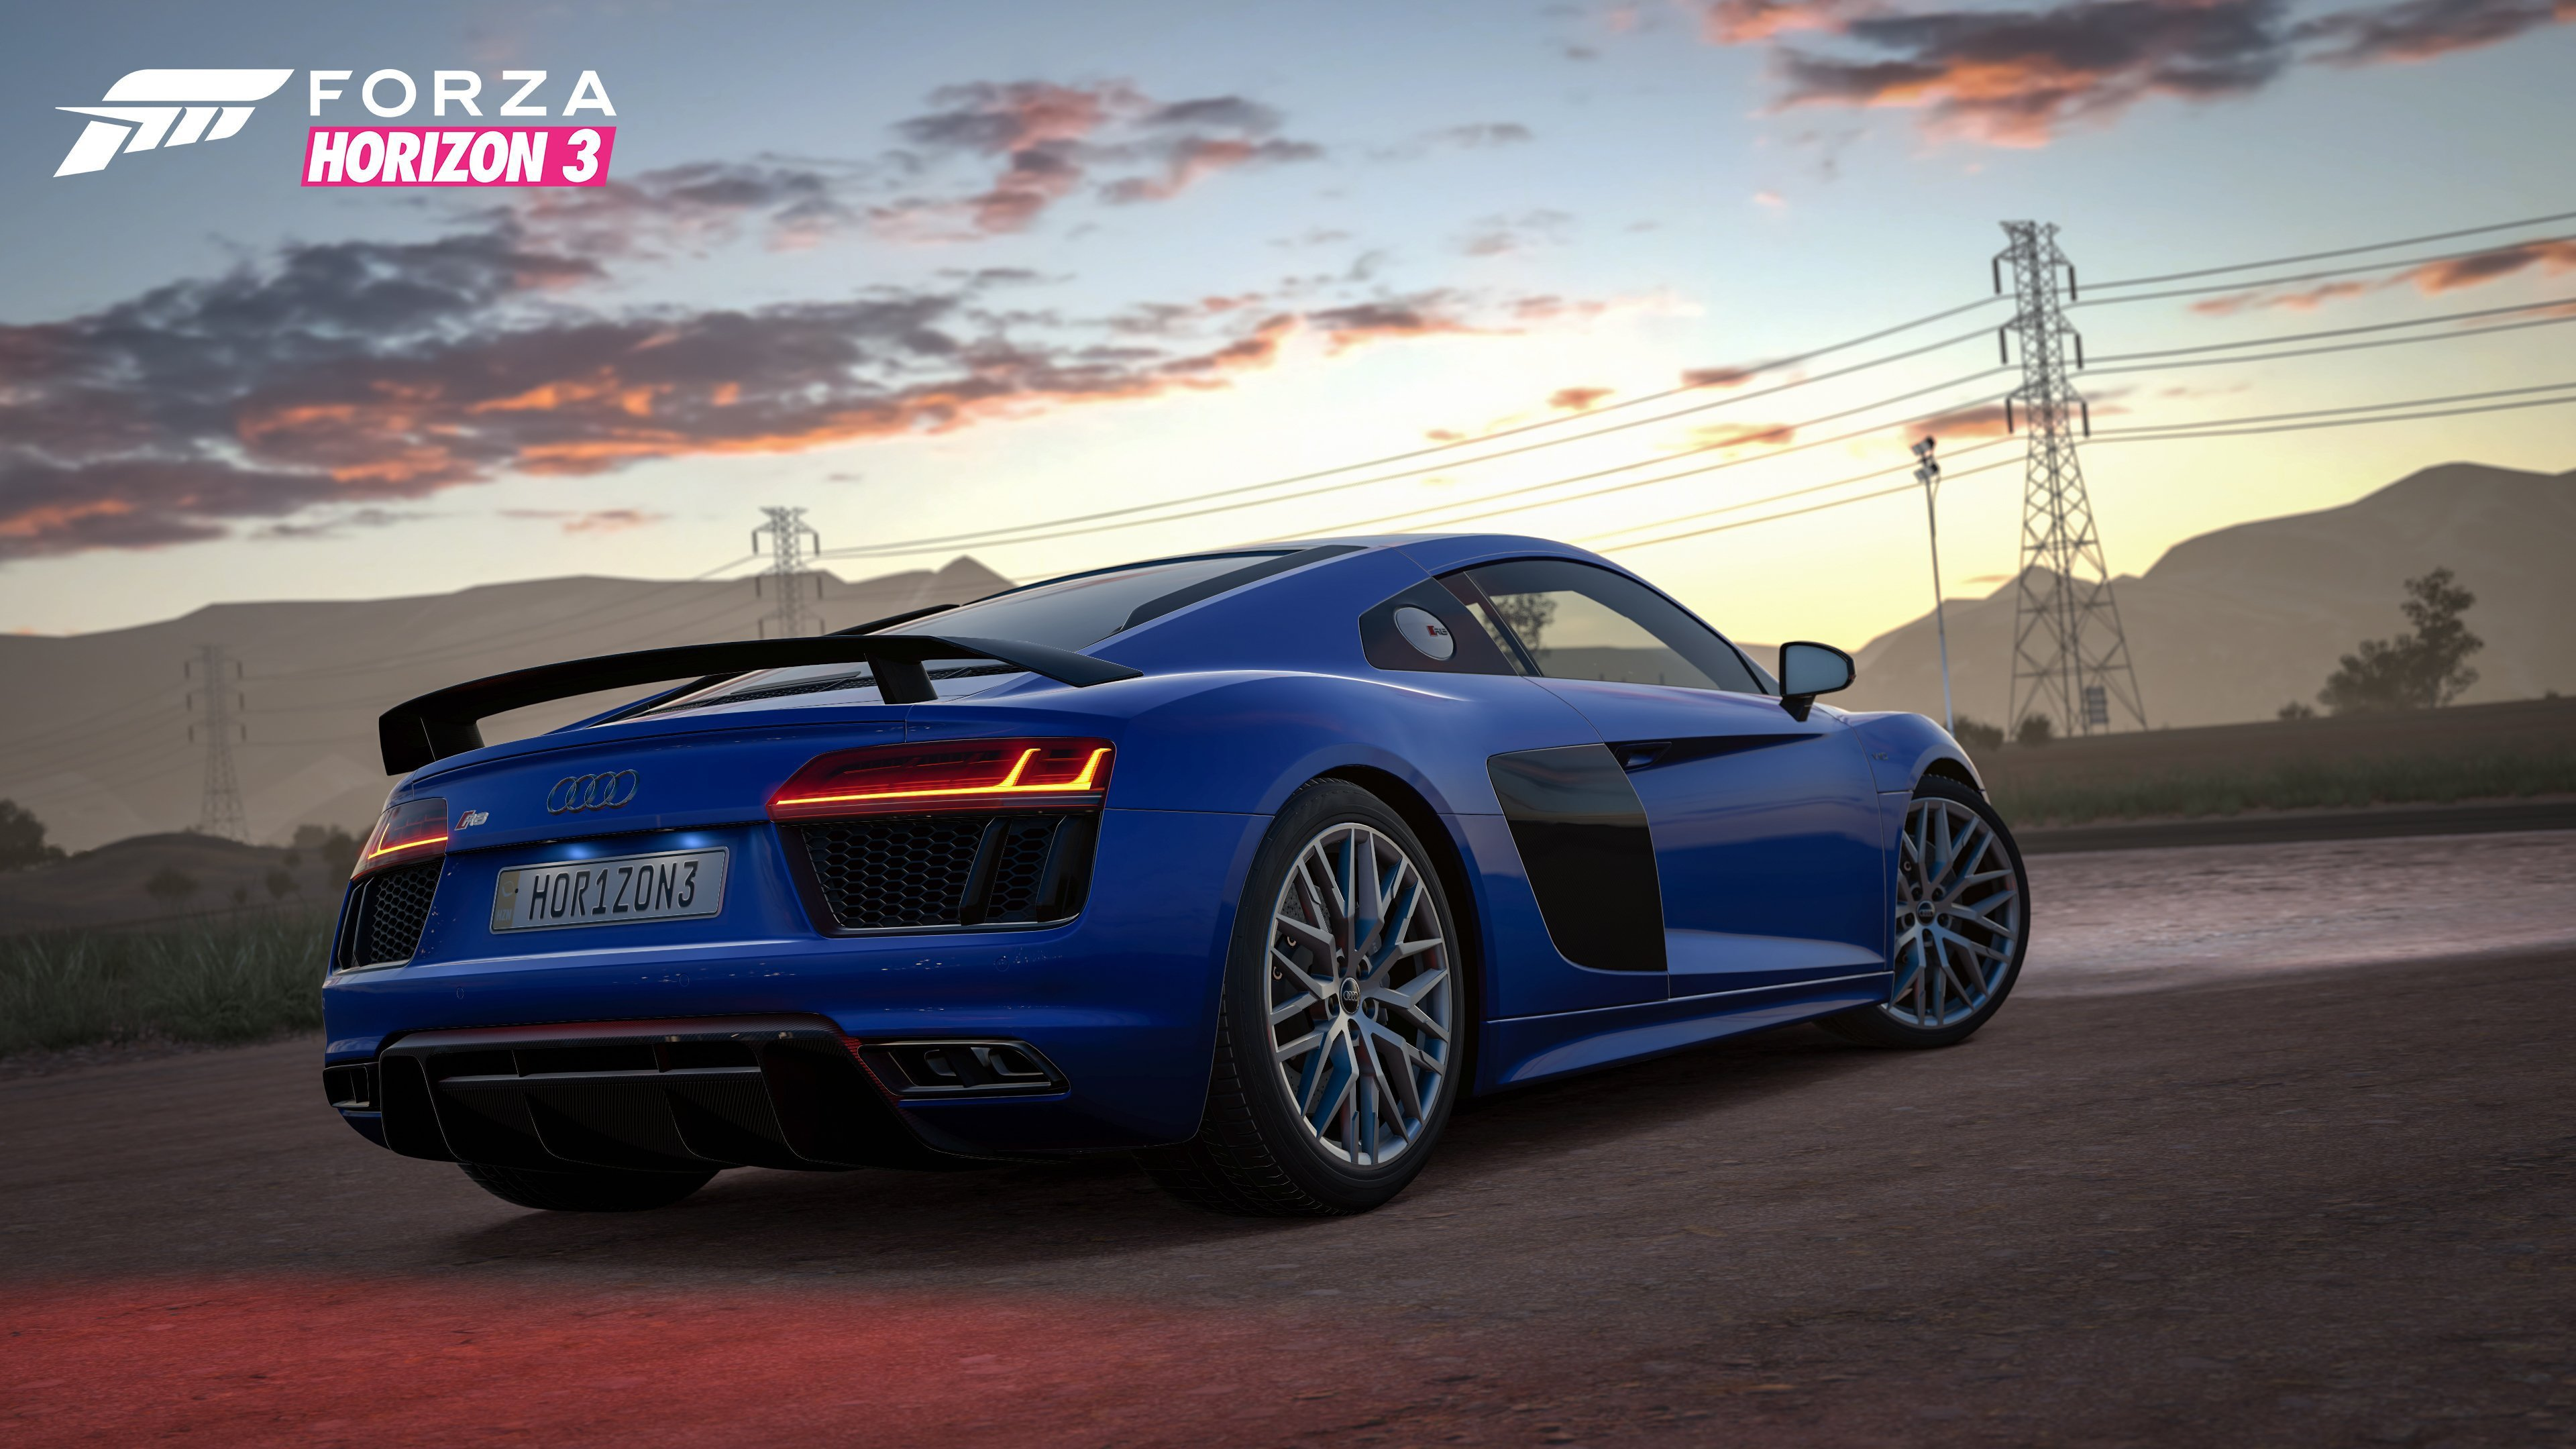 Forza Horizon 3 Wallpapers Images Photos Pictures Backgrounds